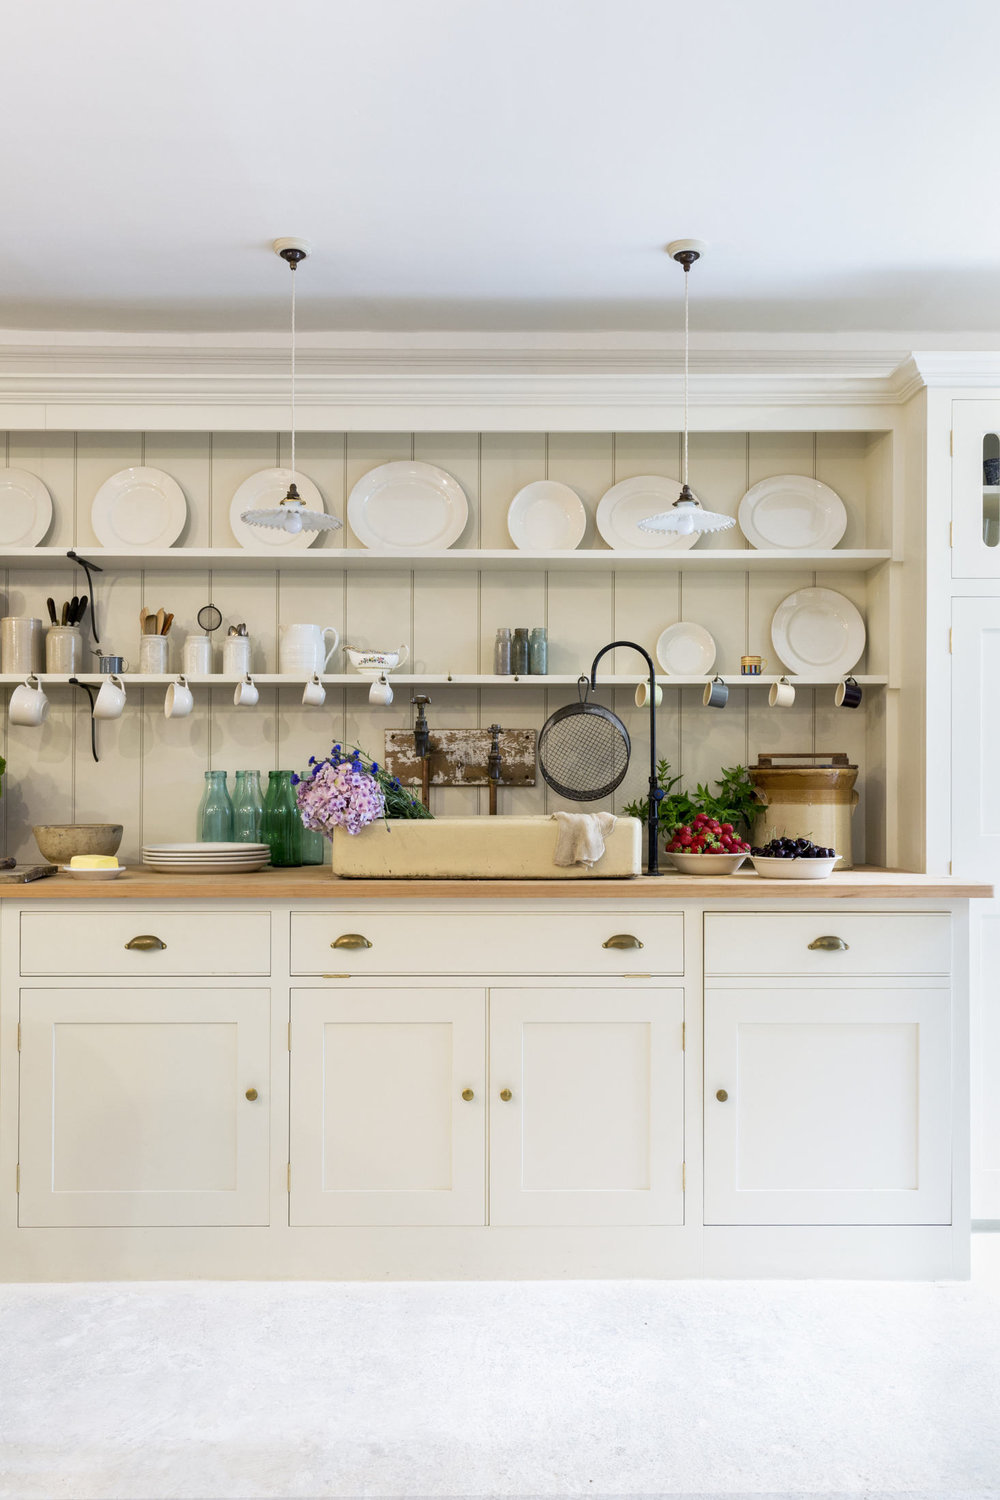 plain-english-kitchen-at-howe-london-3-1466x2199.jpg